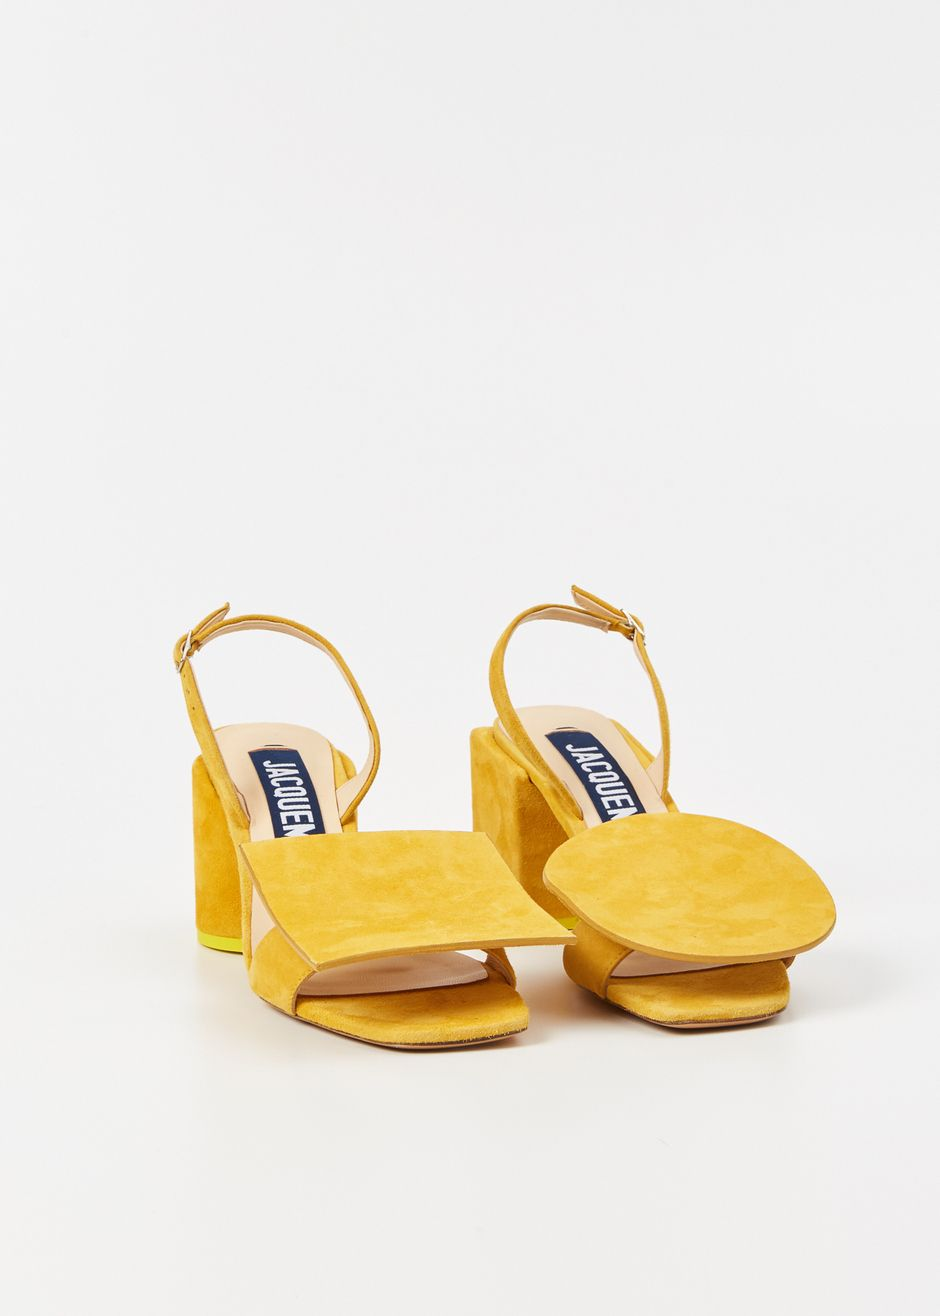 Jacquemus Les Rond Carre (Yellow)